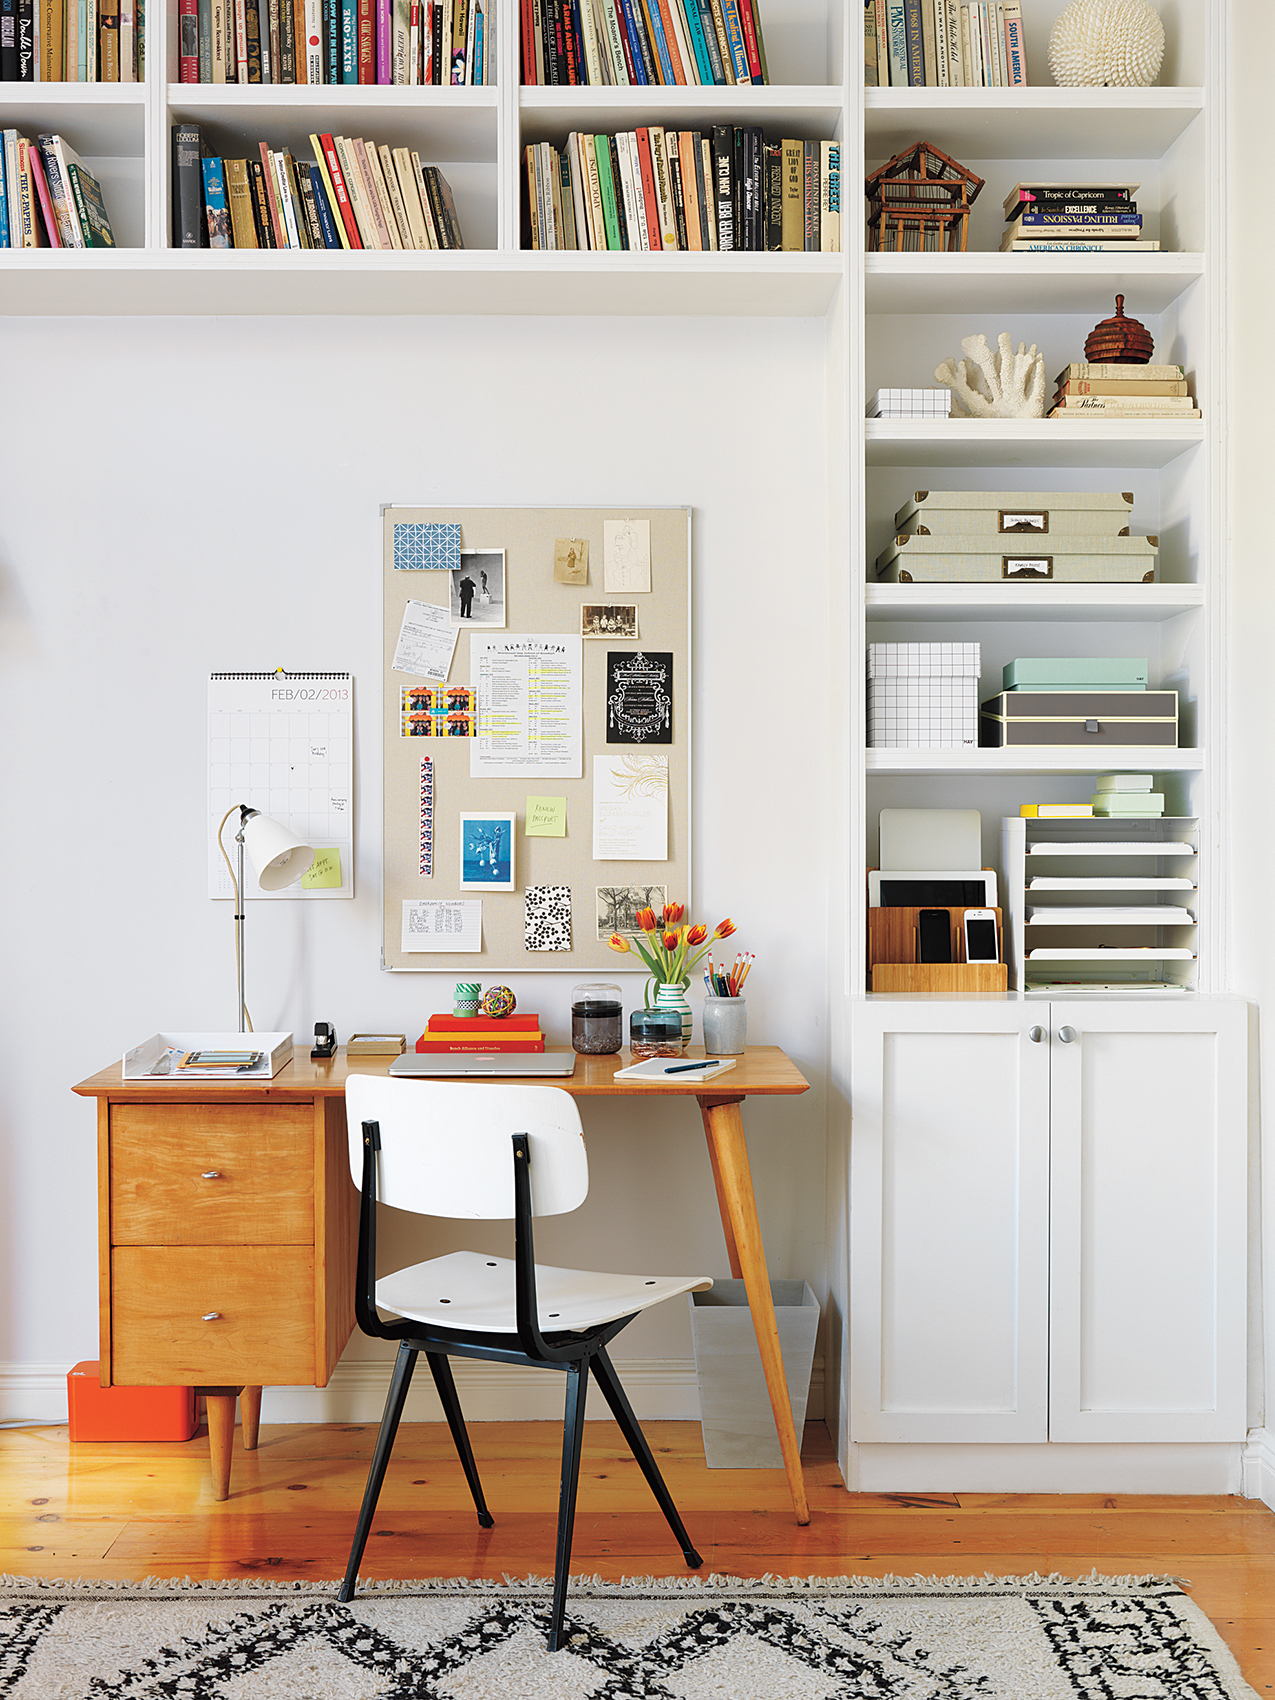 6 Ways to Motivate Yourself to Get Organized